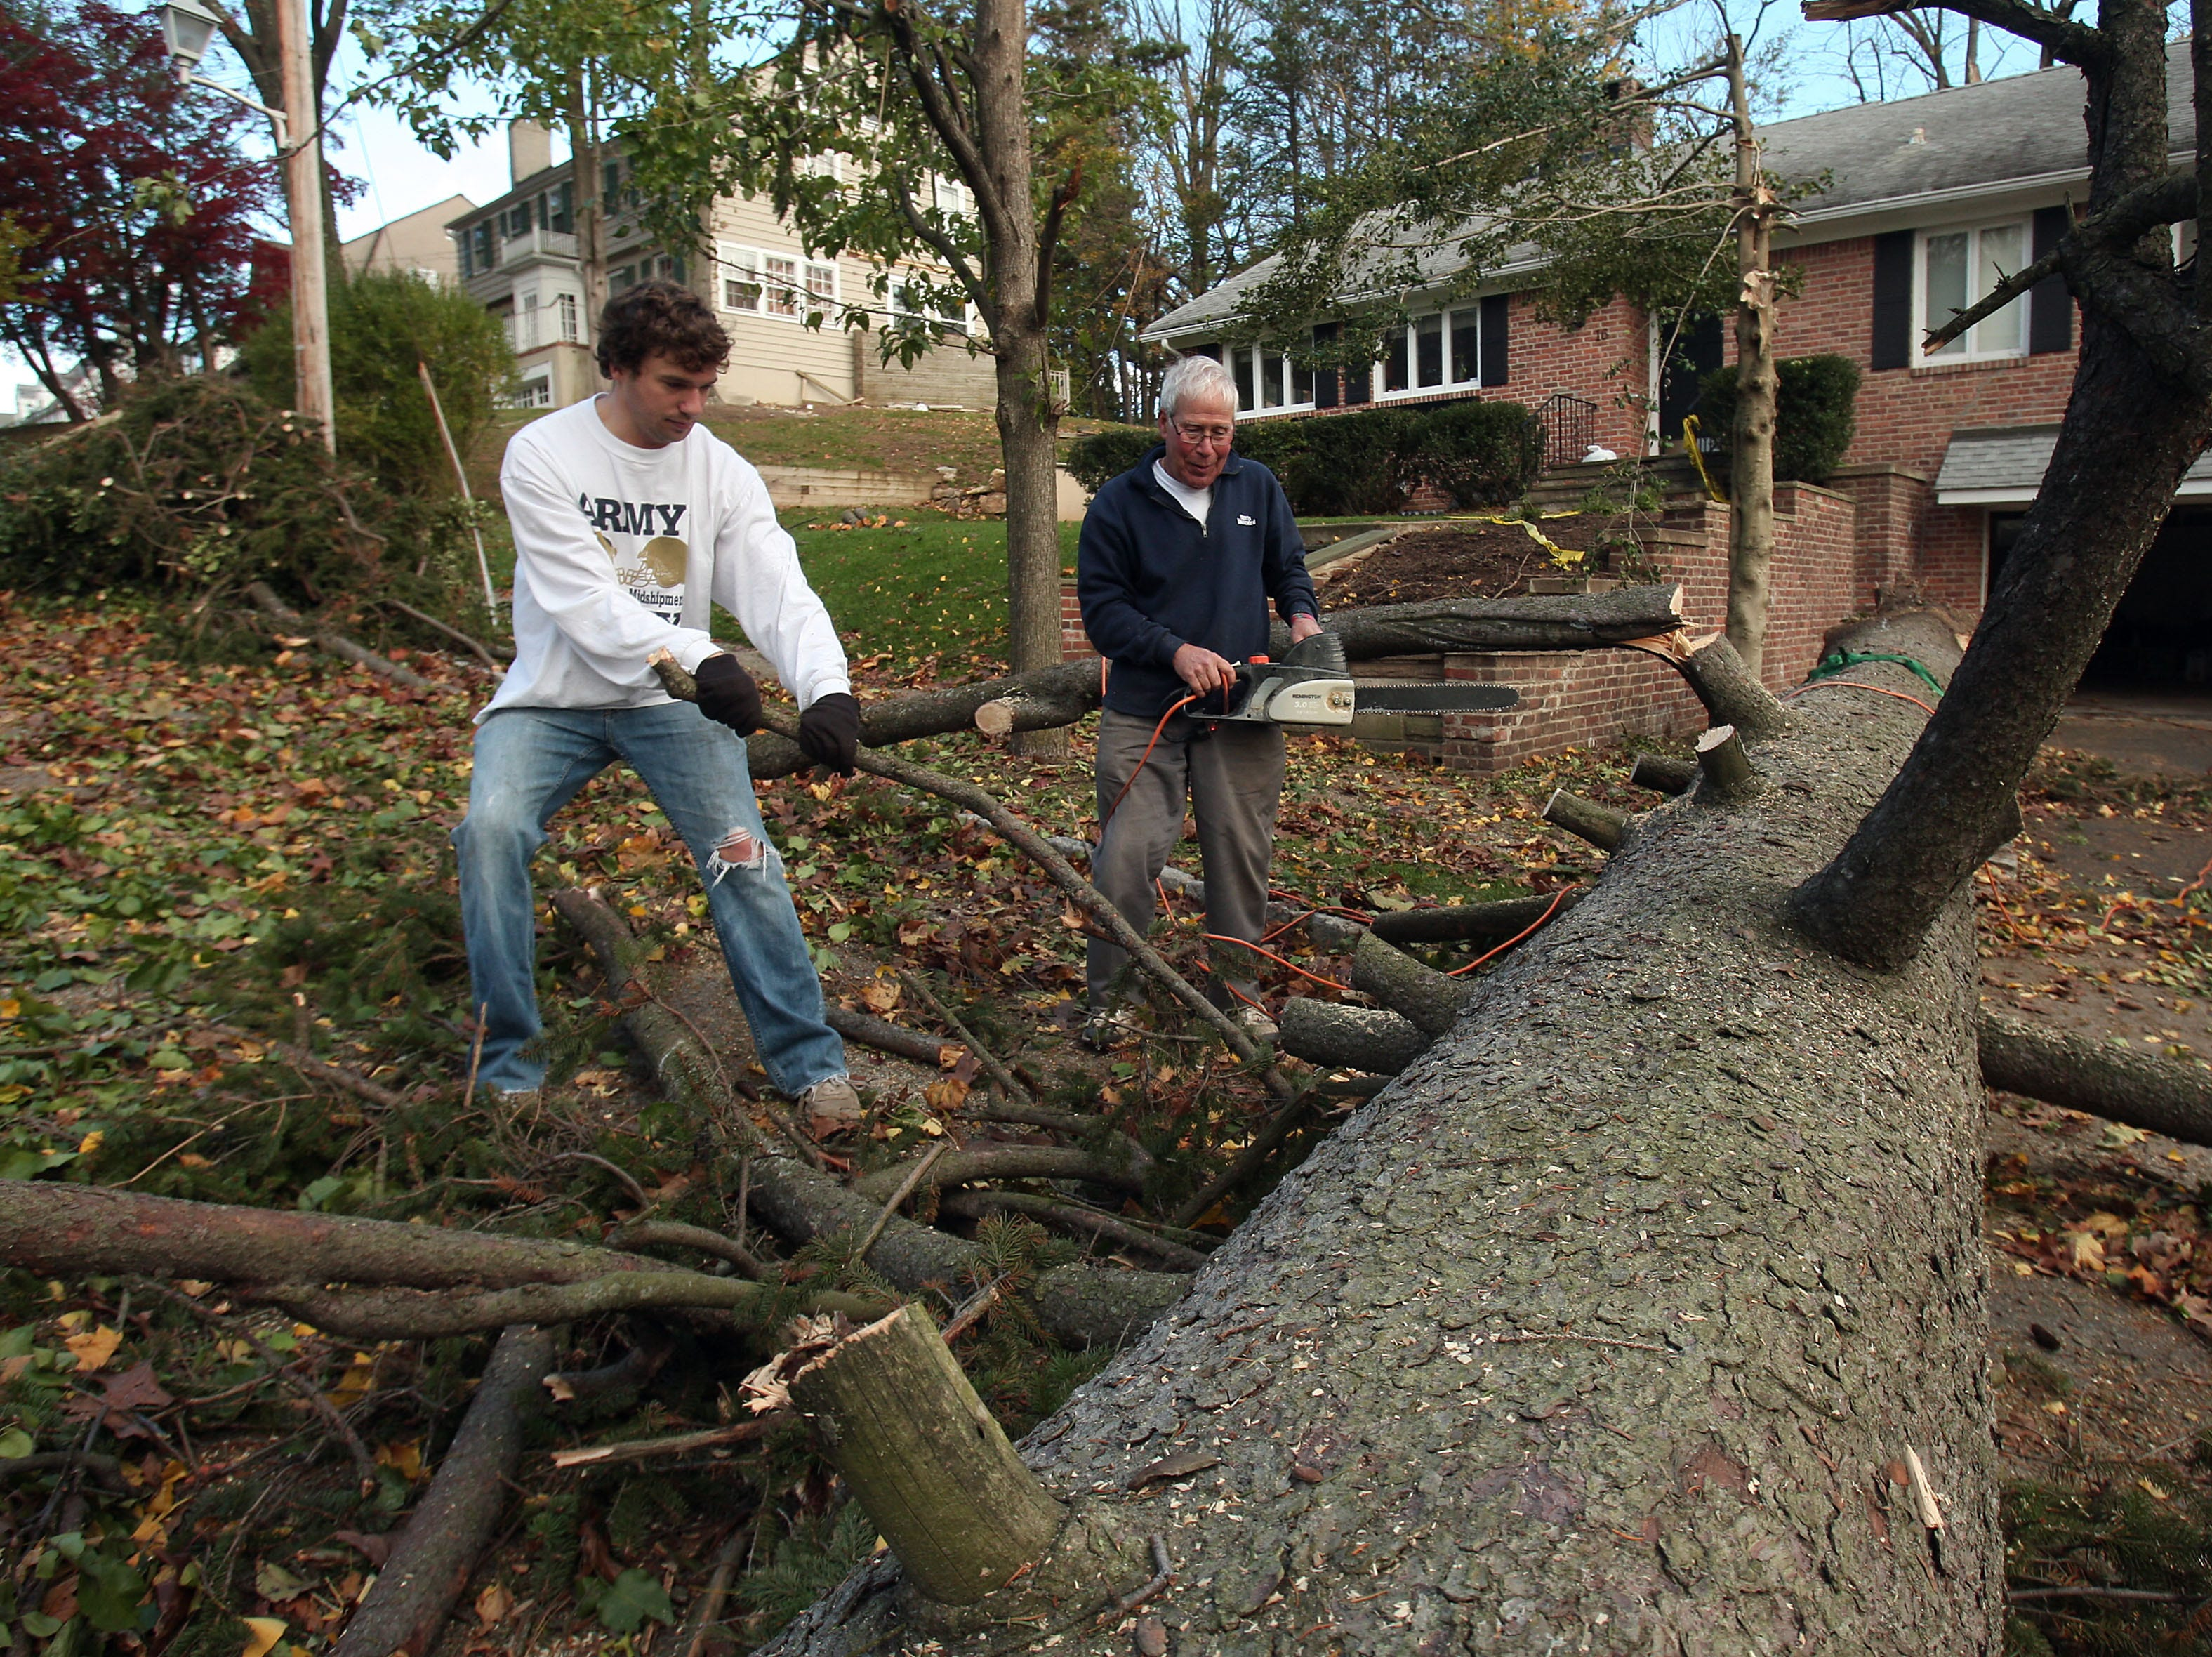 Morristown, N.J.- November 3, 2012--Carl Harter, l, and his father